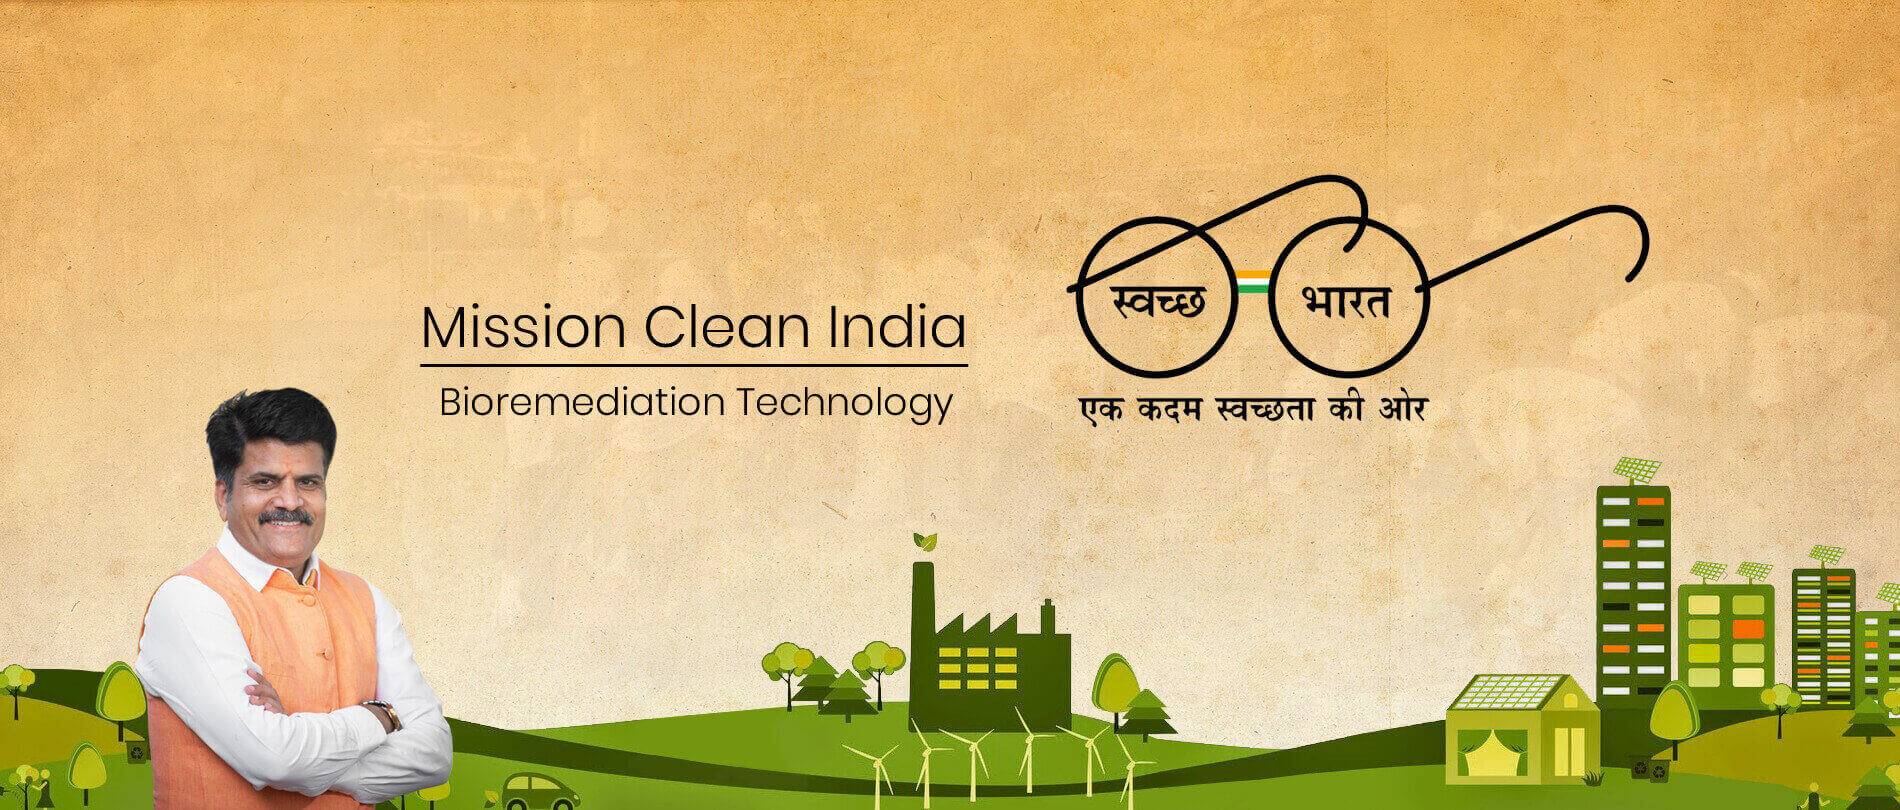 Mission Clean India